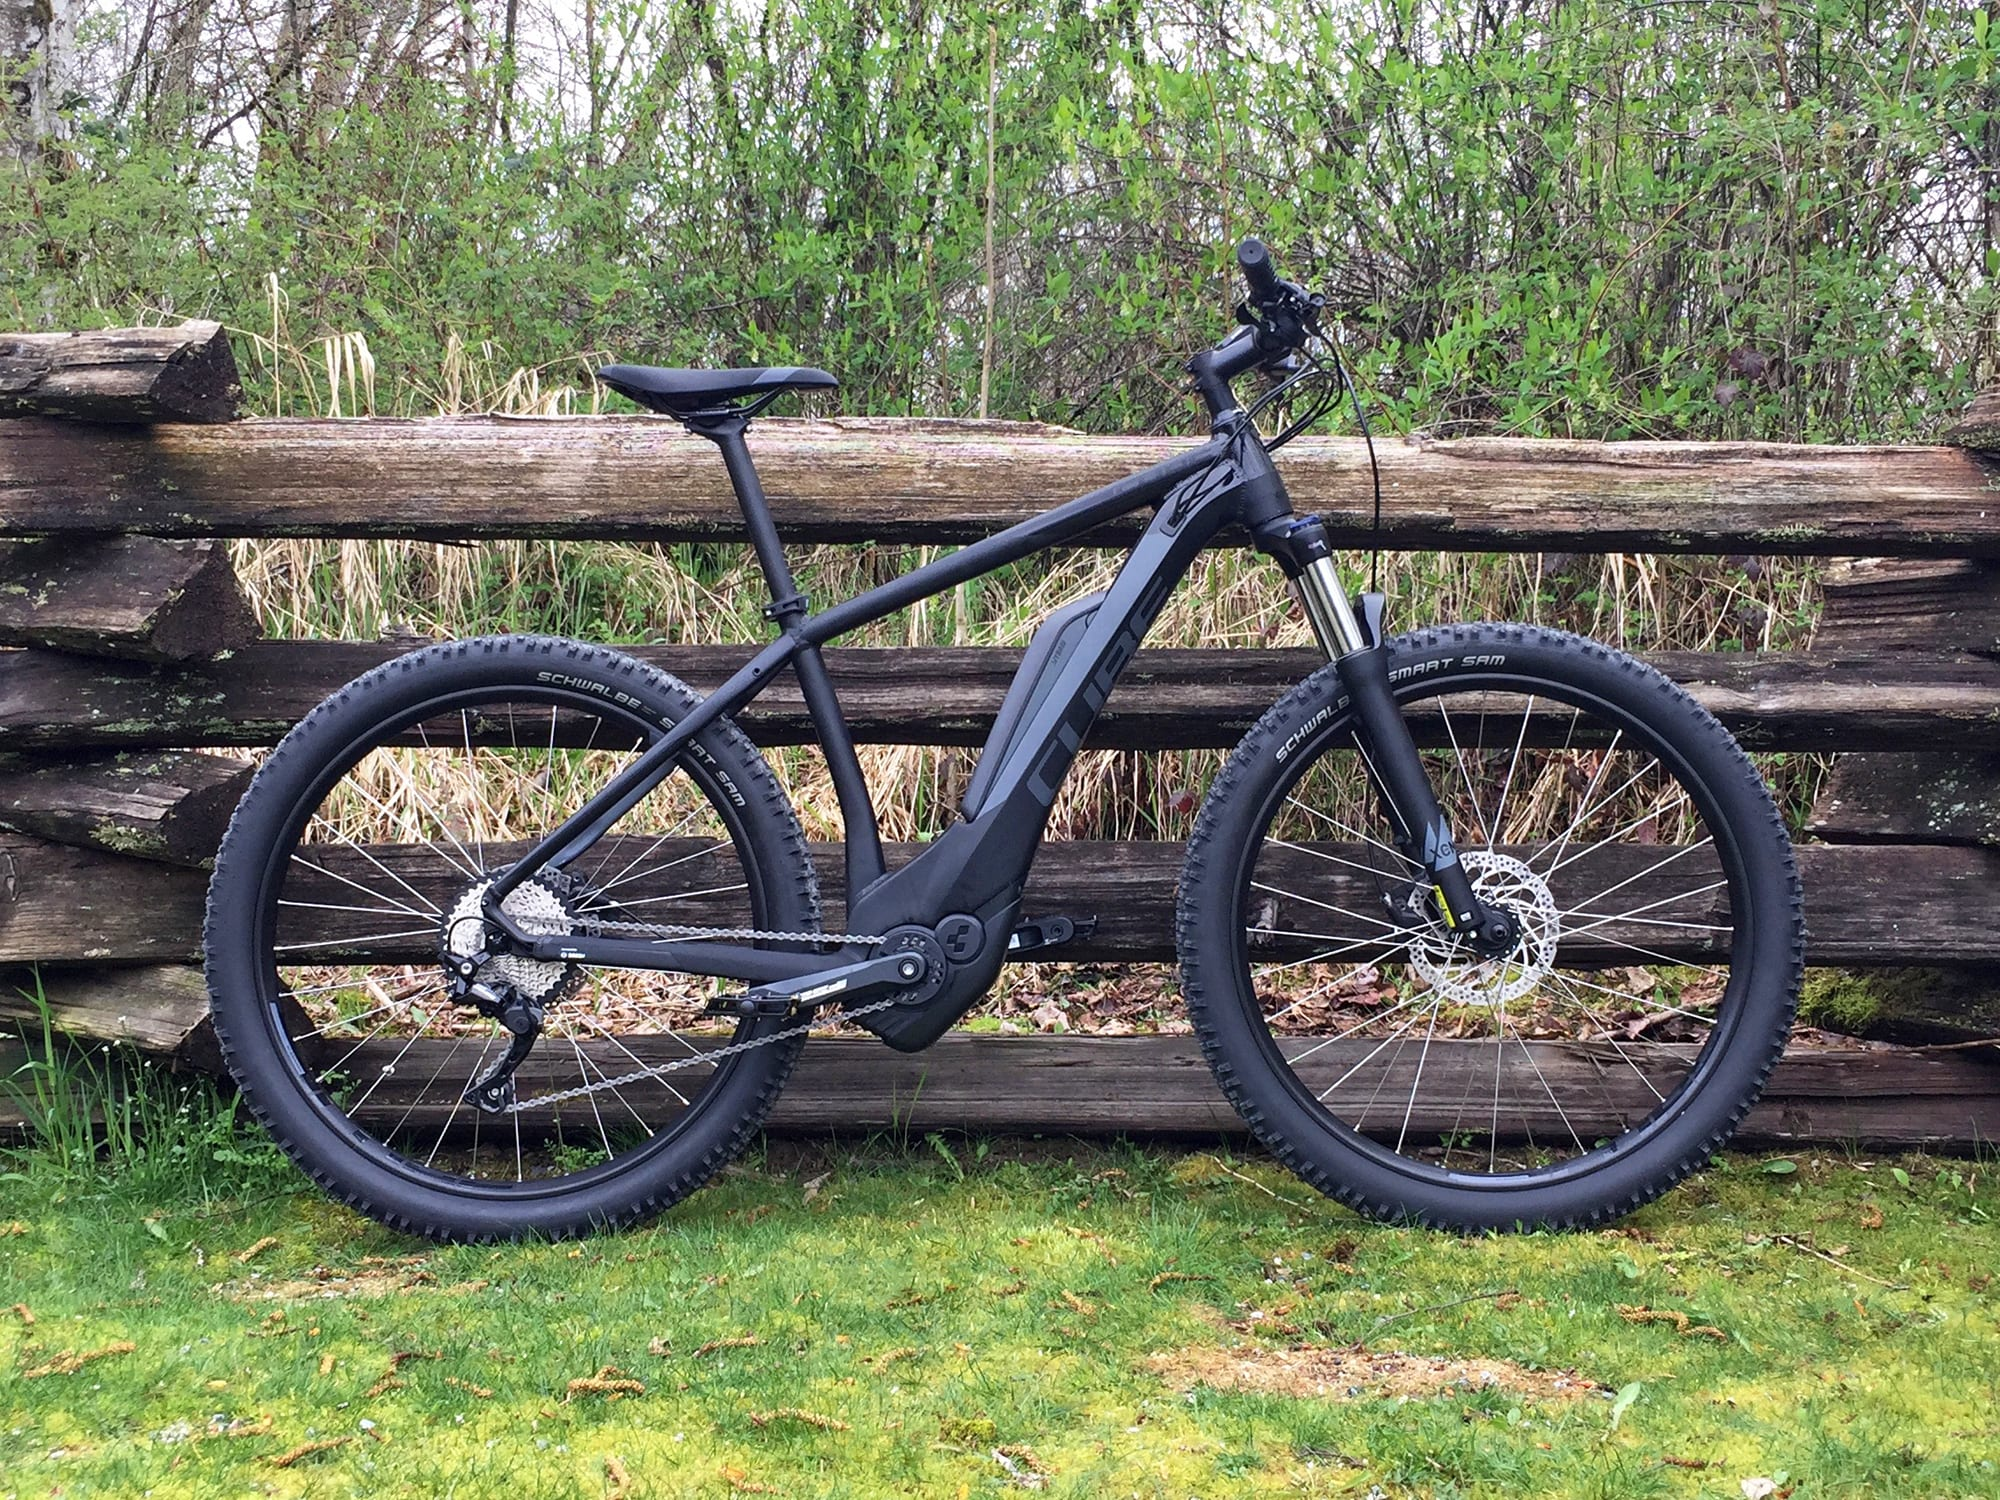 85481c47f8e ... Electric Bike Review. Cube Reaction Hybrid Pro 500. Cube ...